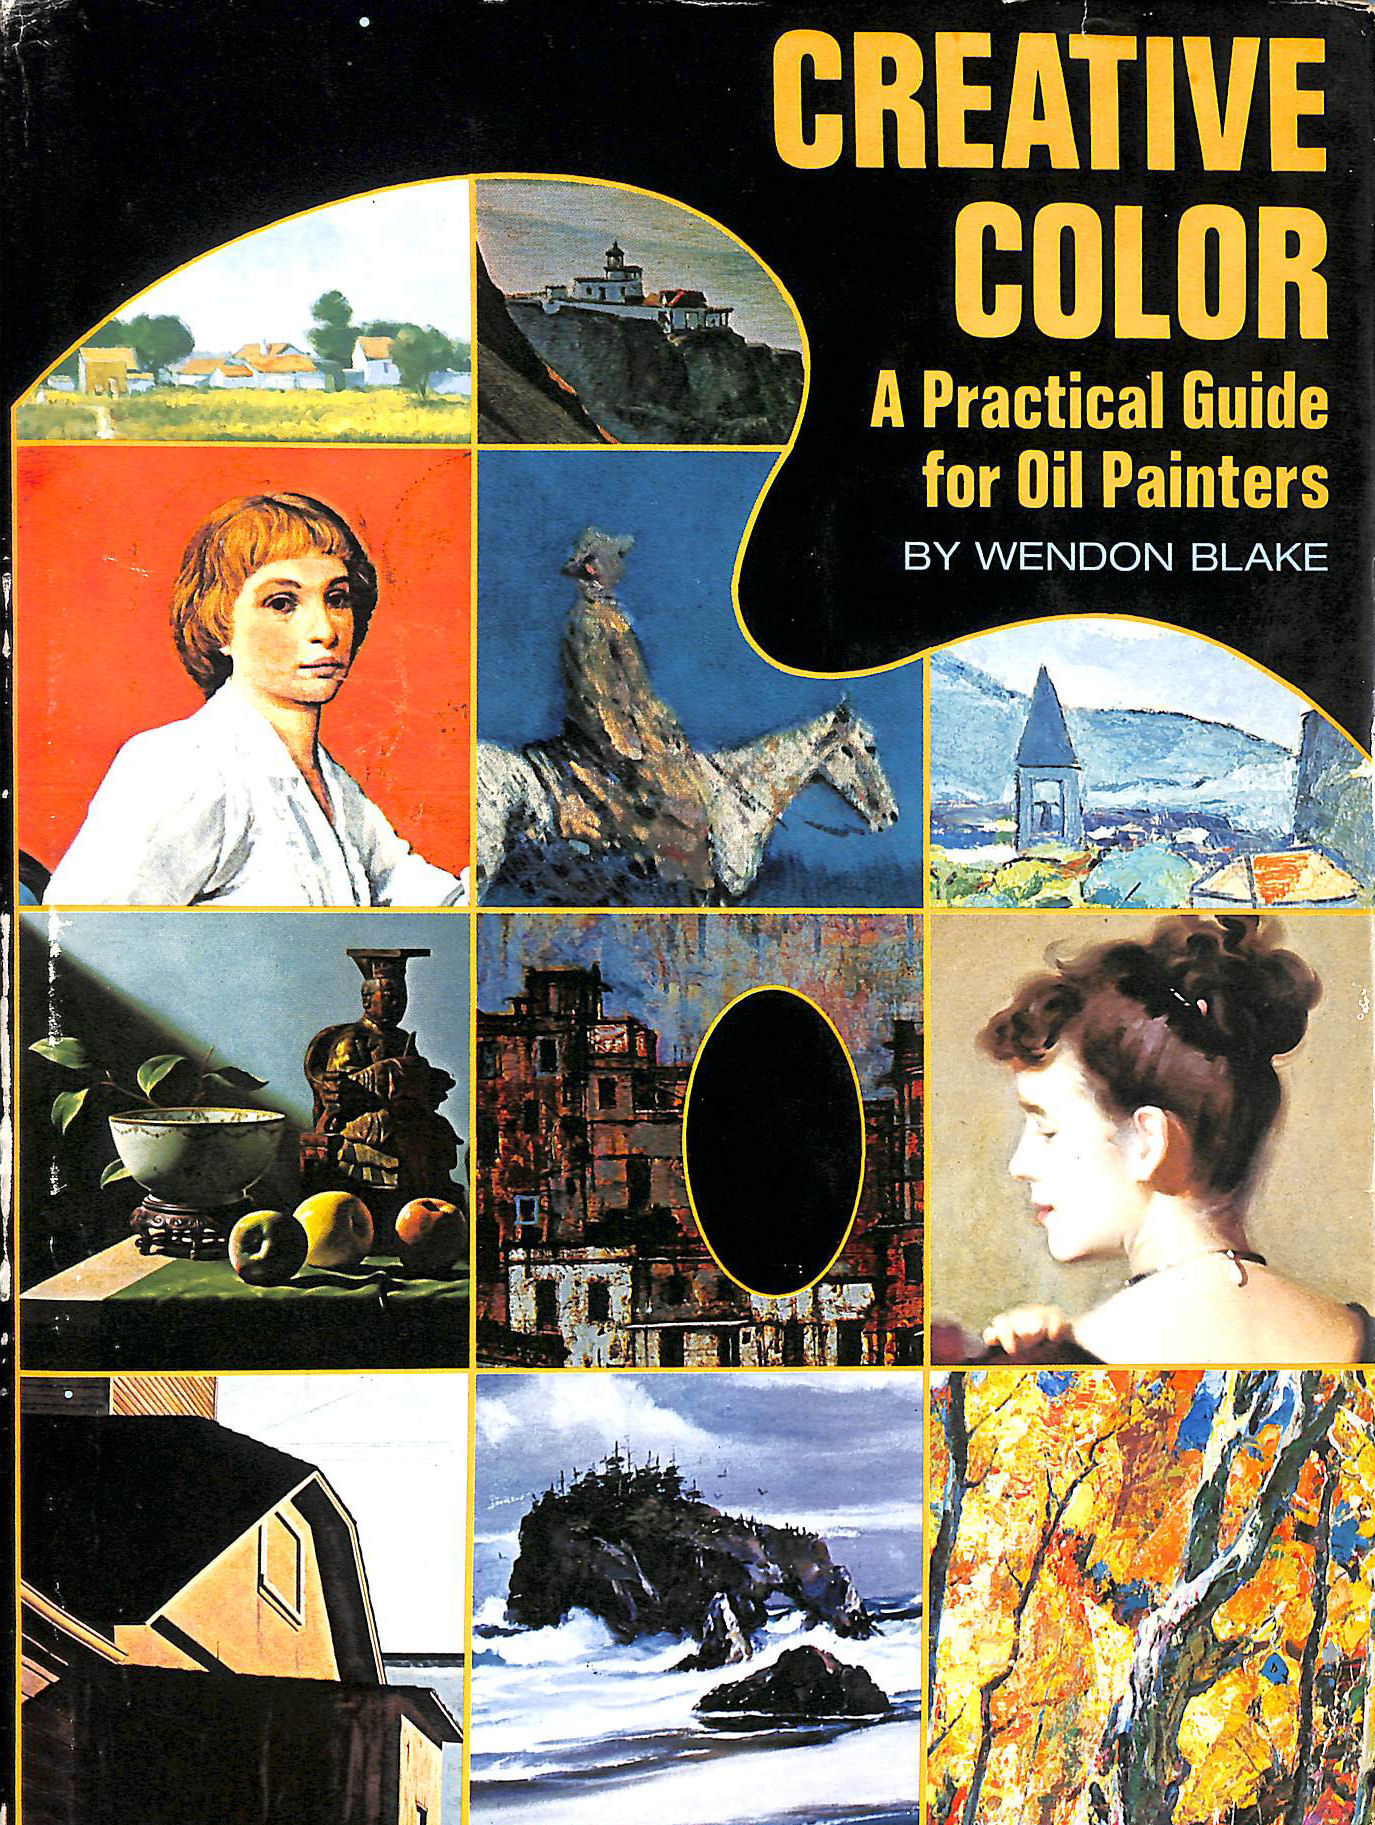 Image for Creative Colour. A Practical Guide For Oil Painters.Creative Colour. A Practical Guide For Oil Painters.